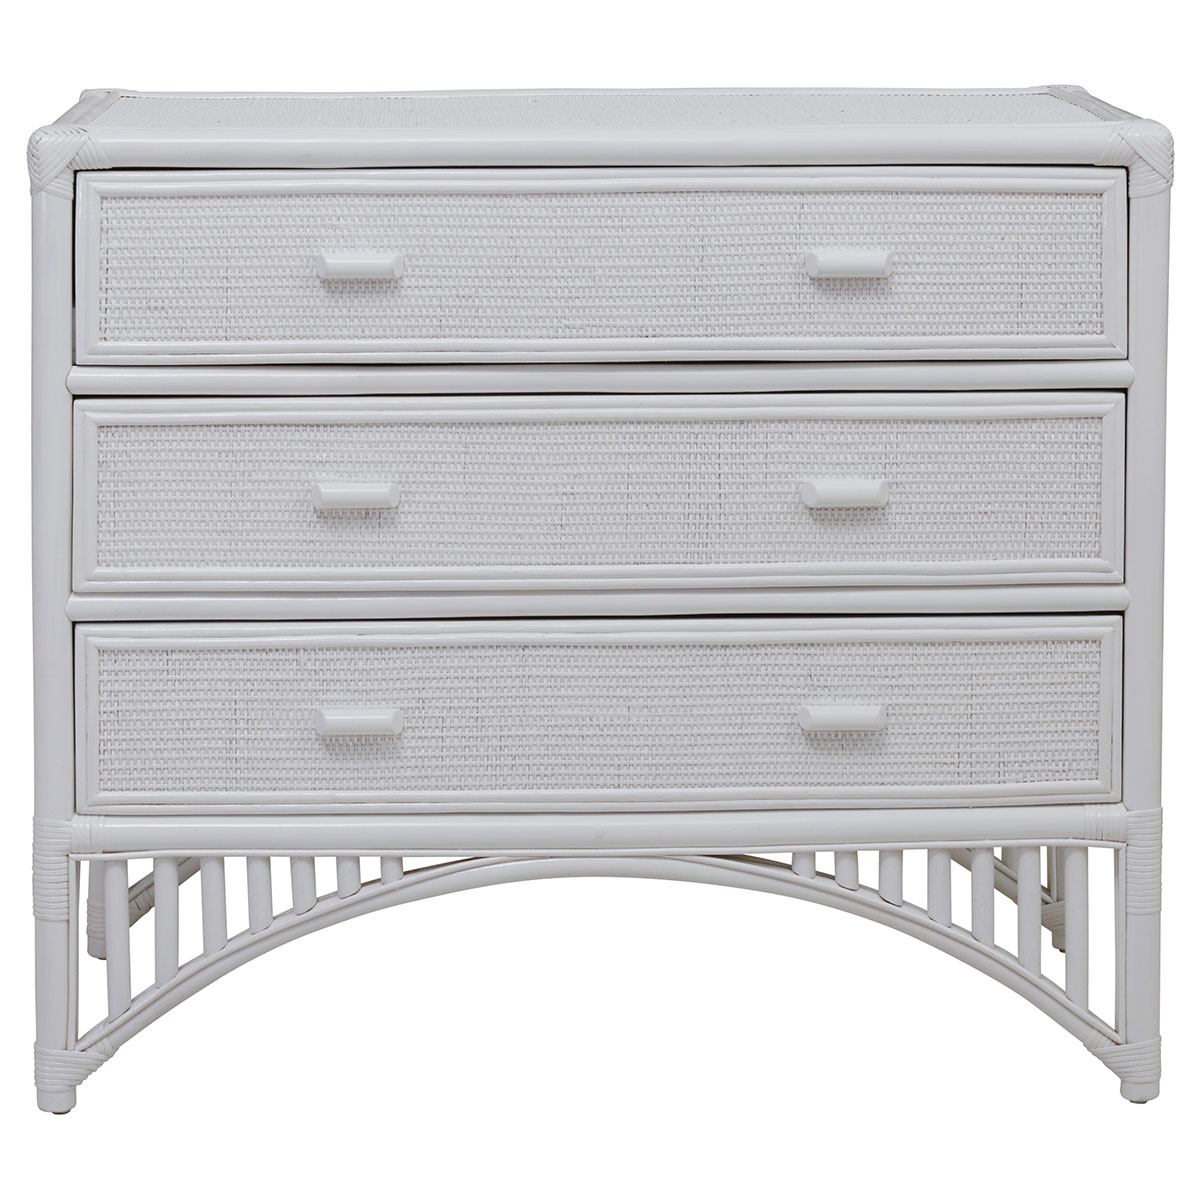 CHLOE CHEST OF 3 DRAWERS in White Rattan